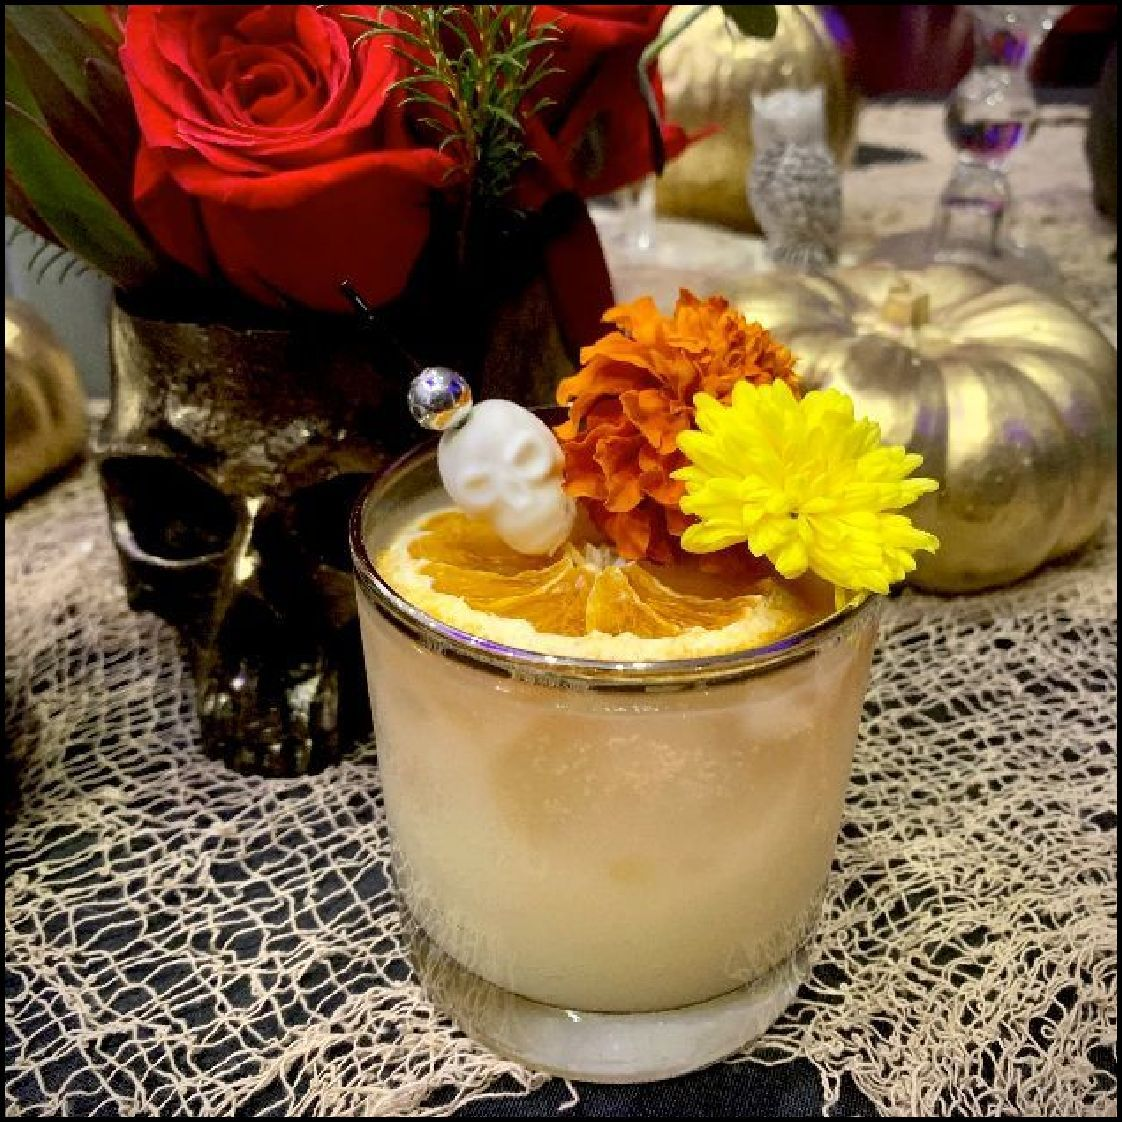 I wanted to dedicate this cocktail to my grandparents, who have all since passed (two passed this year). It's tradition that, on Dia De Los Muertos, Marigolds were used to guide spirits to the Offrenda, using their vibrant colors and aromatic scent. To keeping with tradition and to honor their lives...Here's to Mis Abuelos.